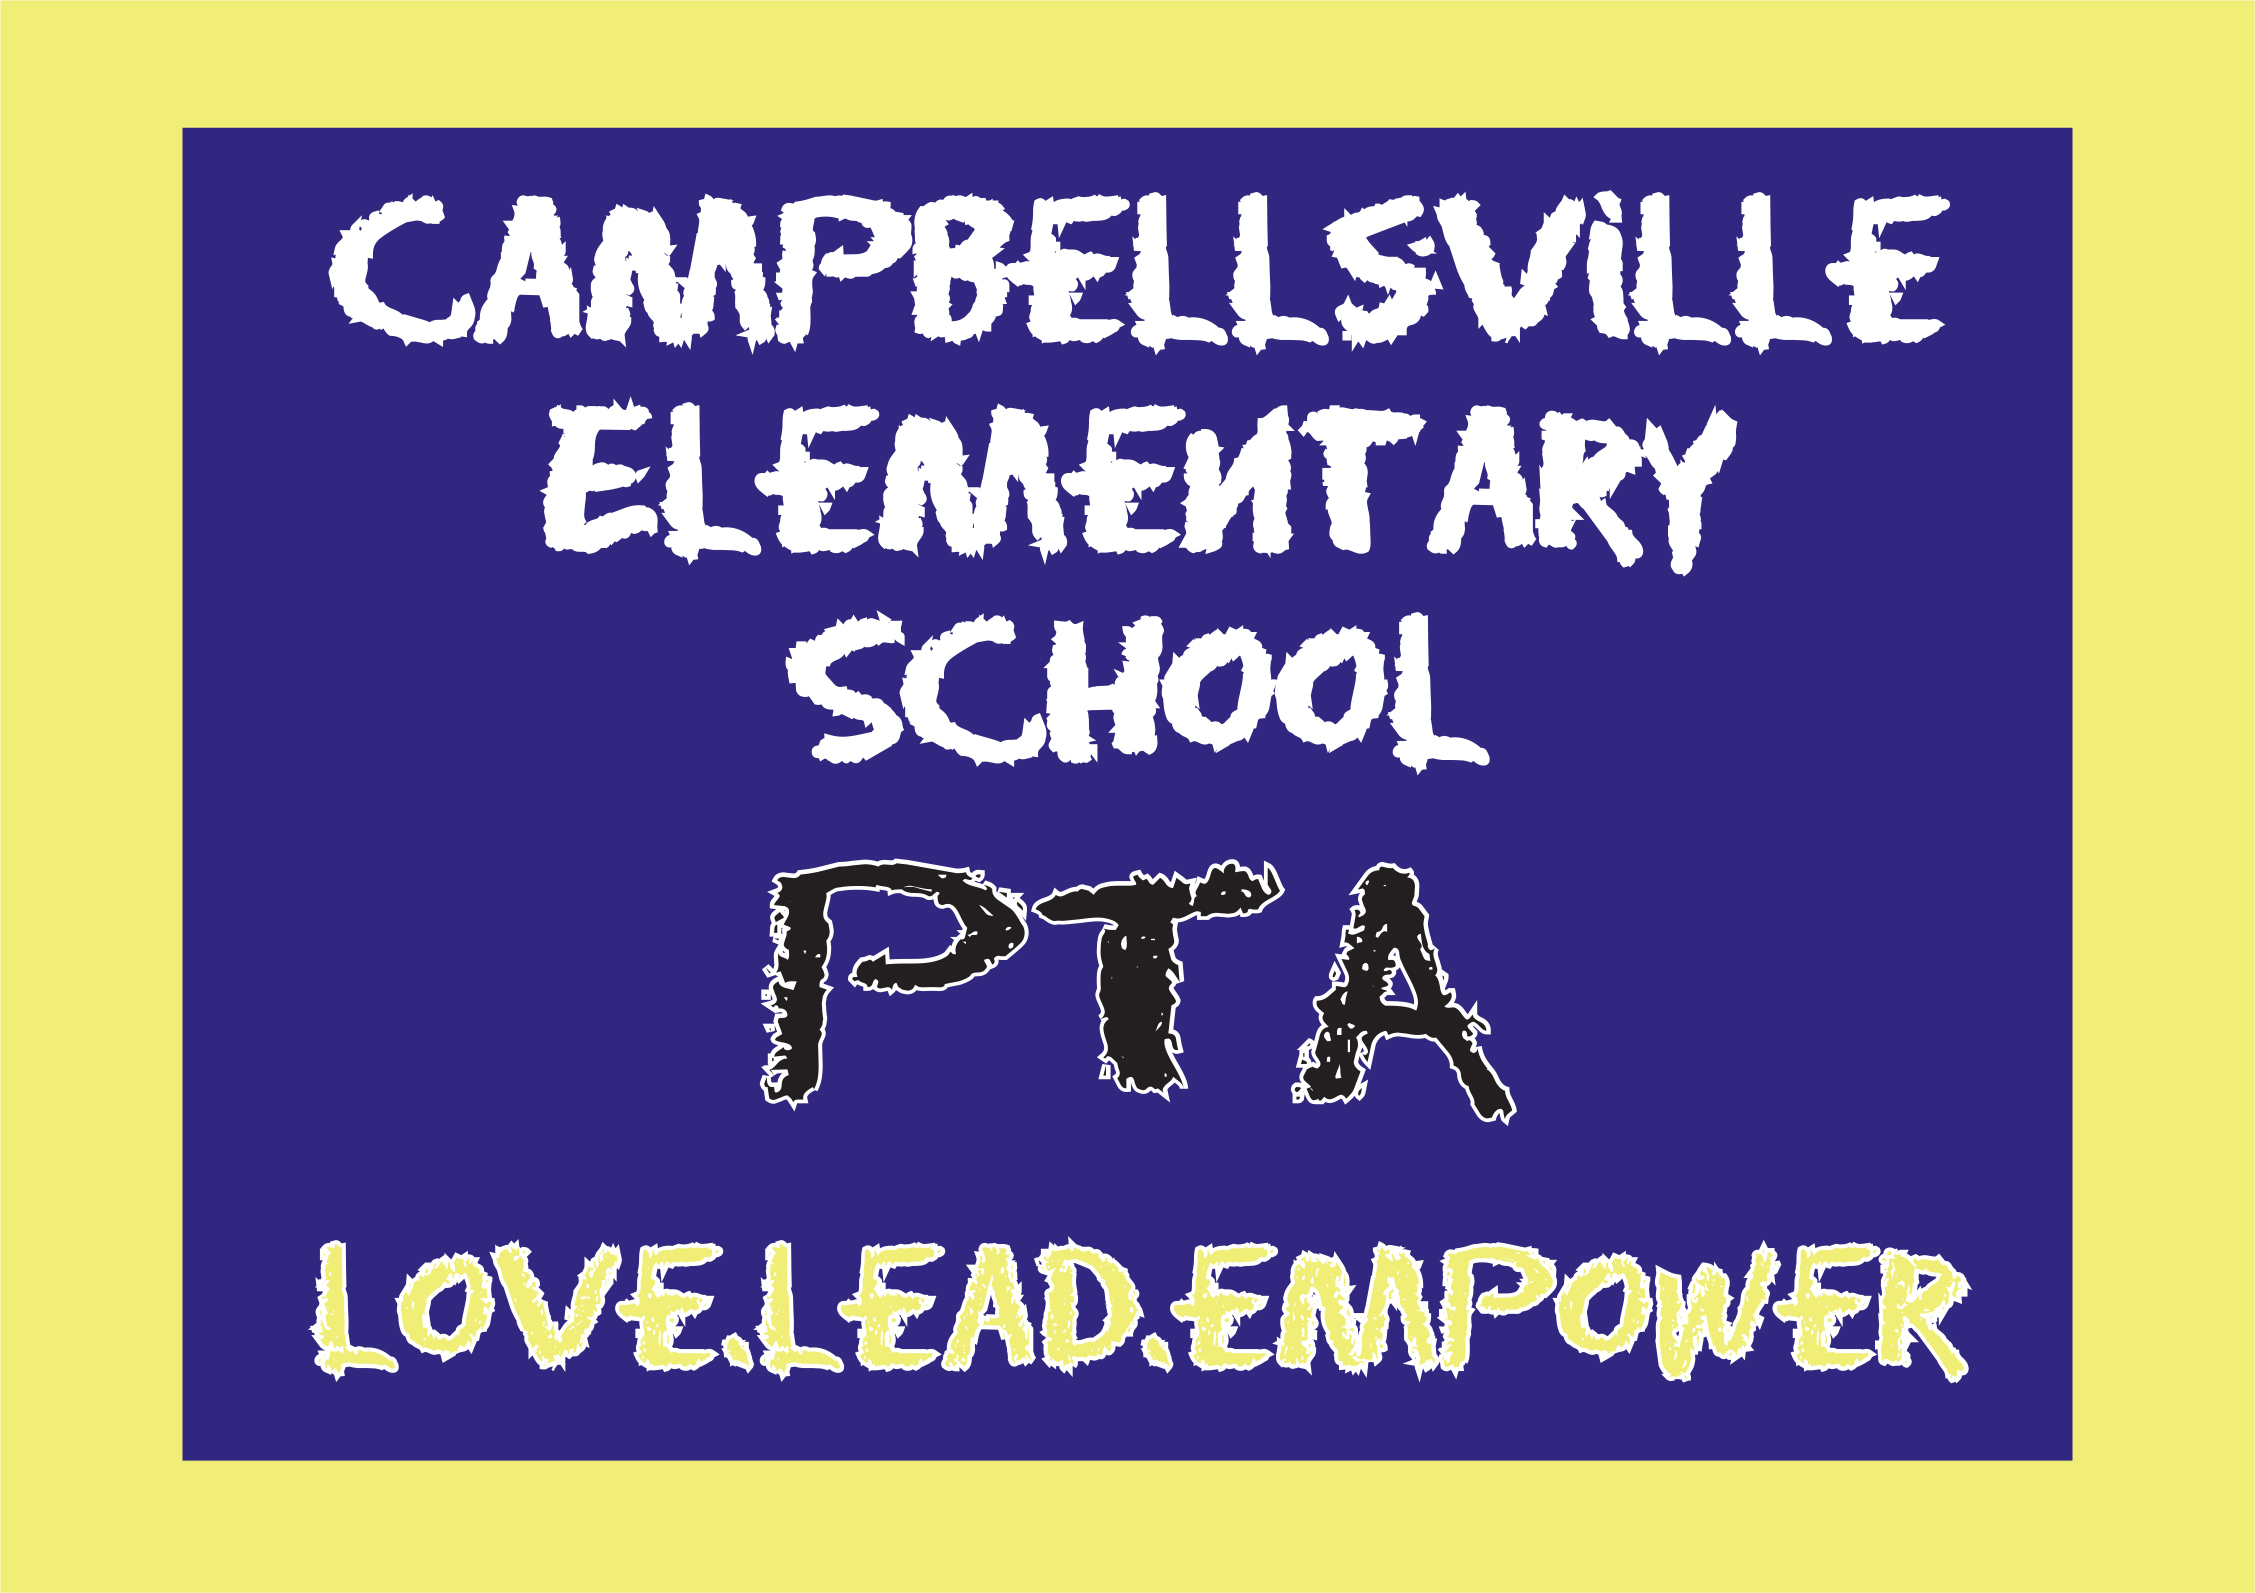 Campbellsville Elementary School PTA has scheduled a meeting to discuss upcoming events.    The meeting will be Saturday, May 19, at 10 a.m. in the cafeteria.